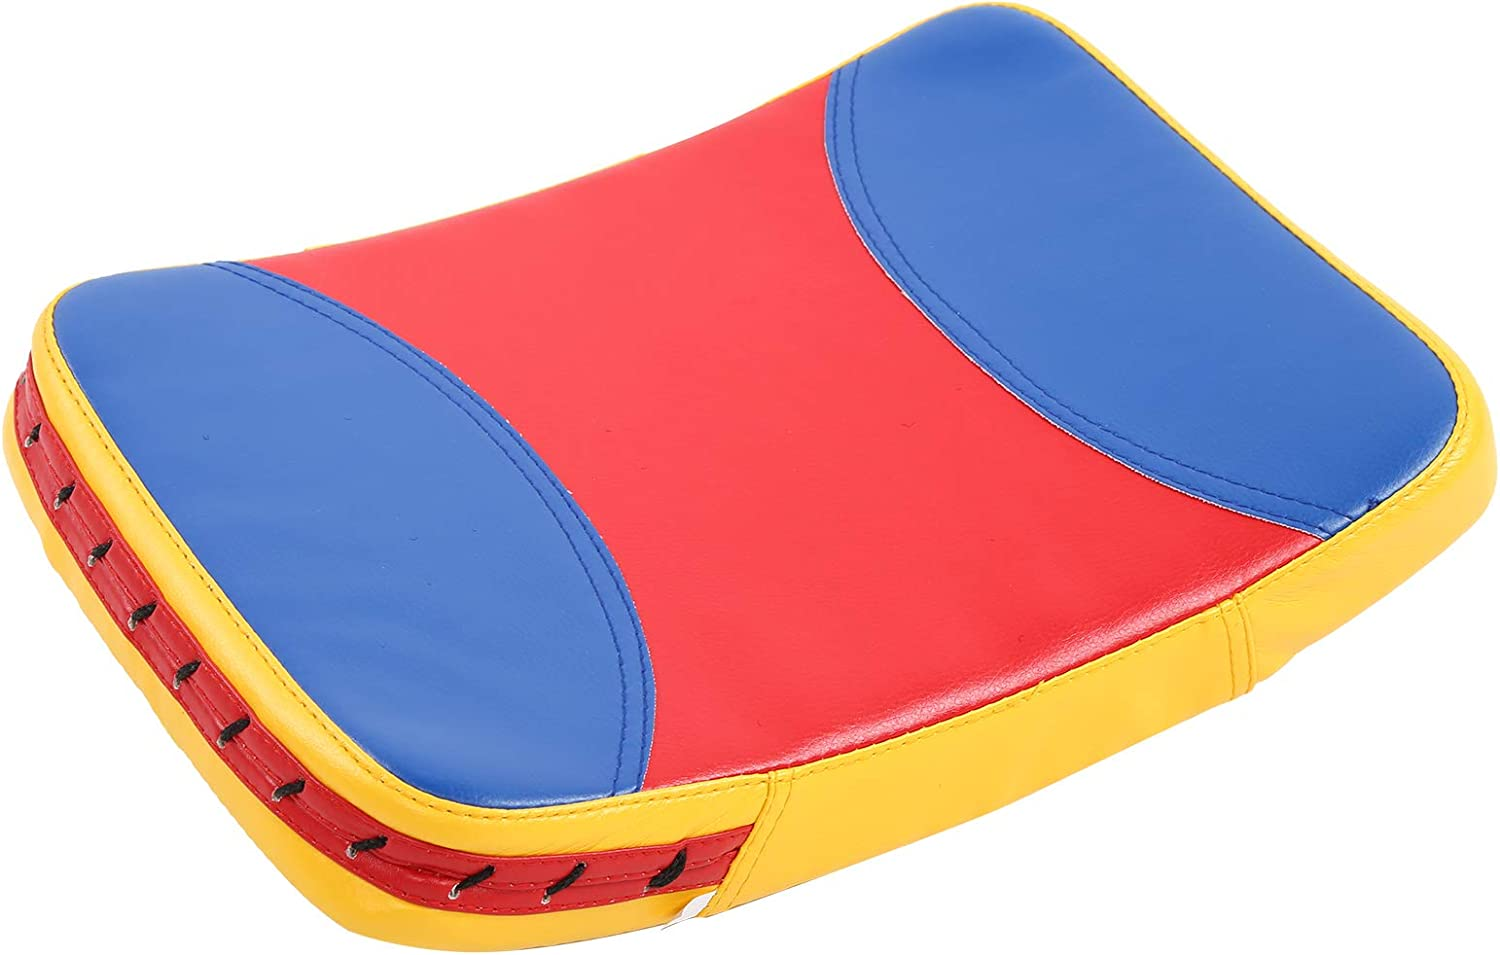 Qqmora Challenge the lowest price of Japan Training Side Kick Pad Resistant Max 55% OFF Durable Tear PU Leather